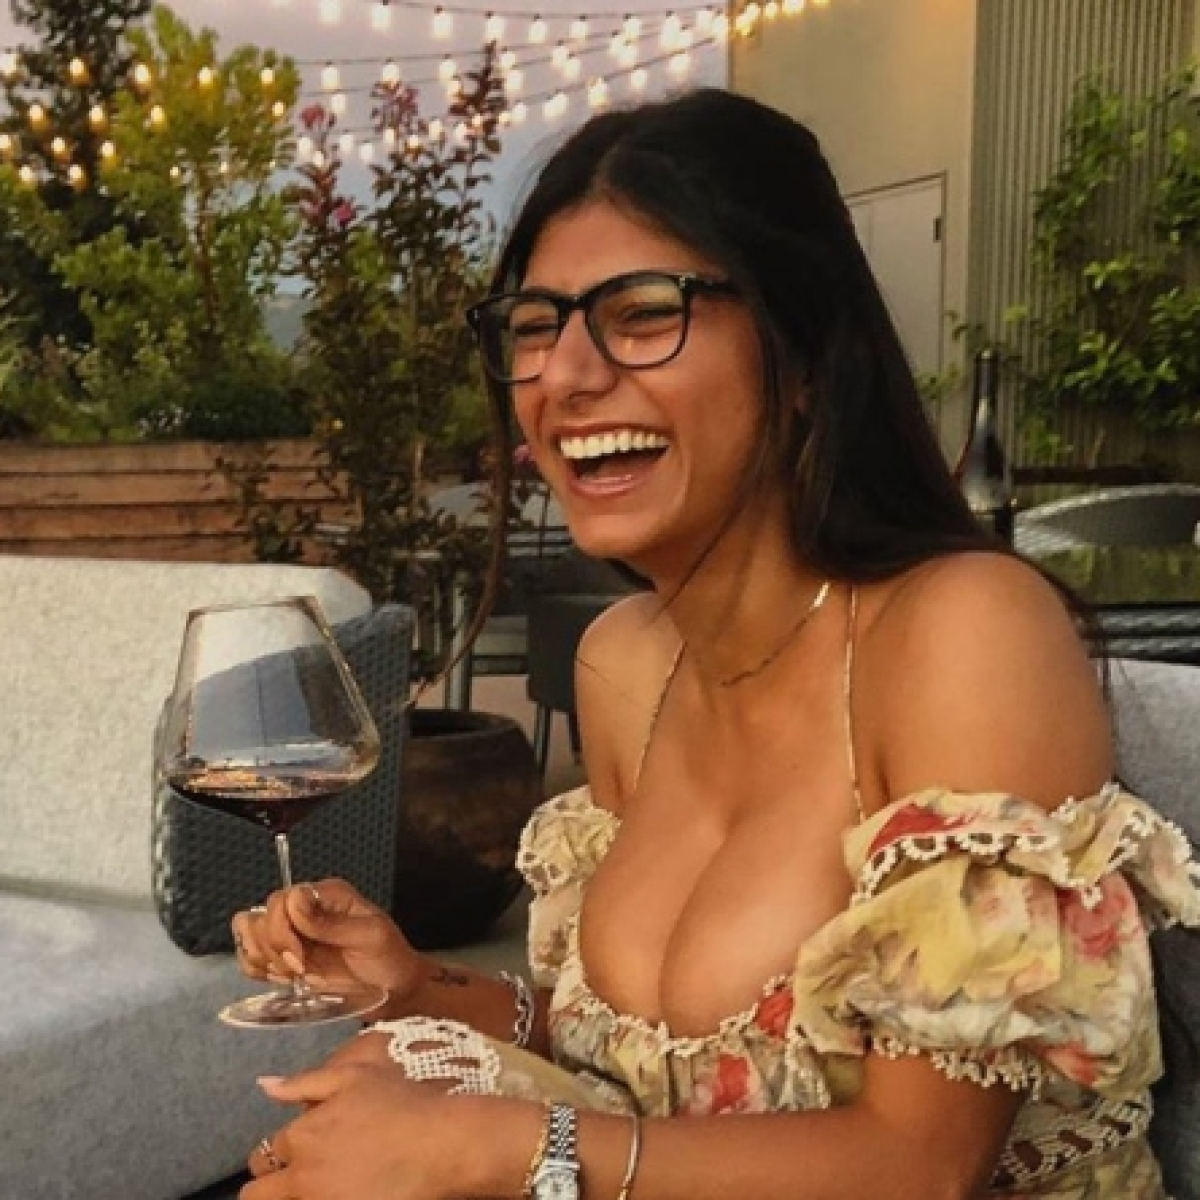 'Stand with farmers': As Mia Khalifa extends support to protestors, Twitter trolls bring up her past as porn star